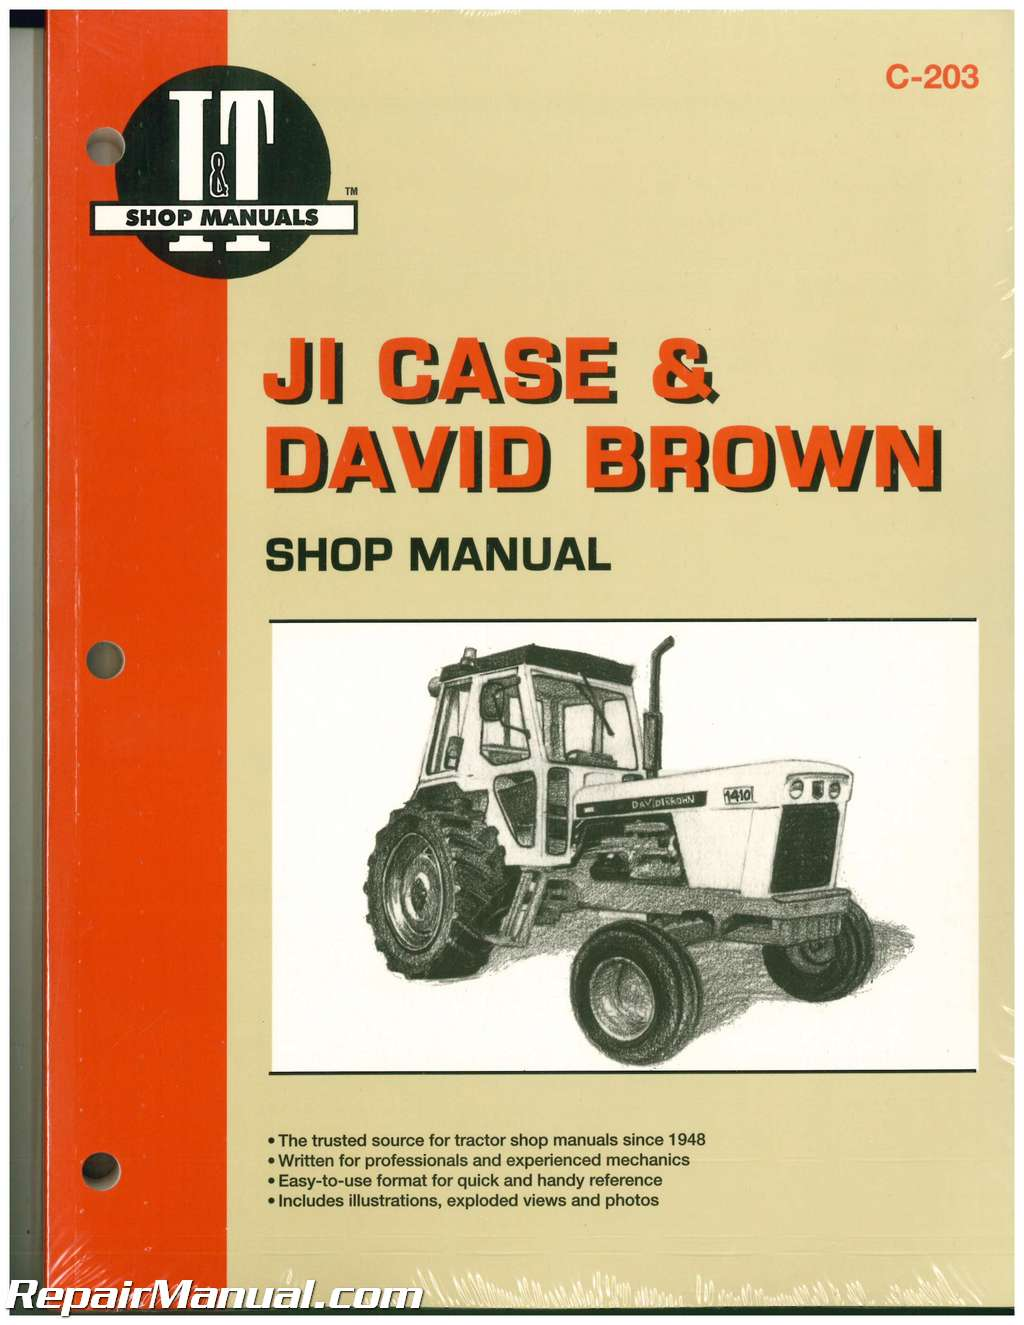 ji case and david brown farm tractor service manual rh repairmanual com David Brown 1212 Tractor david brown 1210 tractor service manual